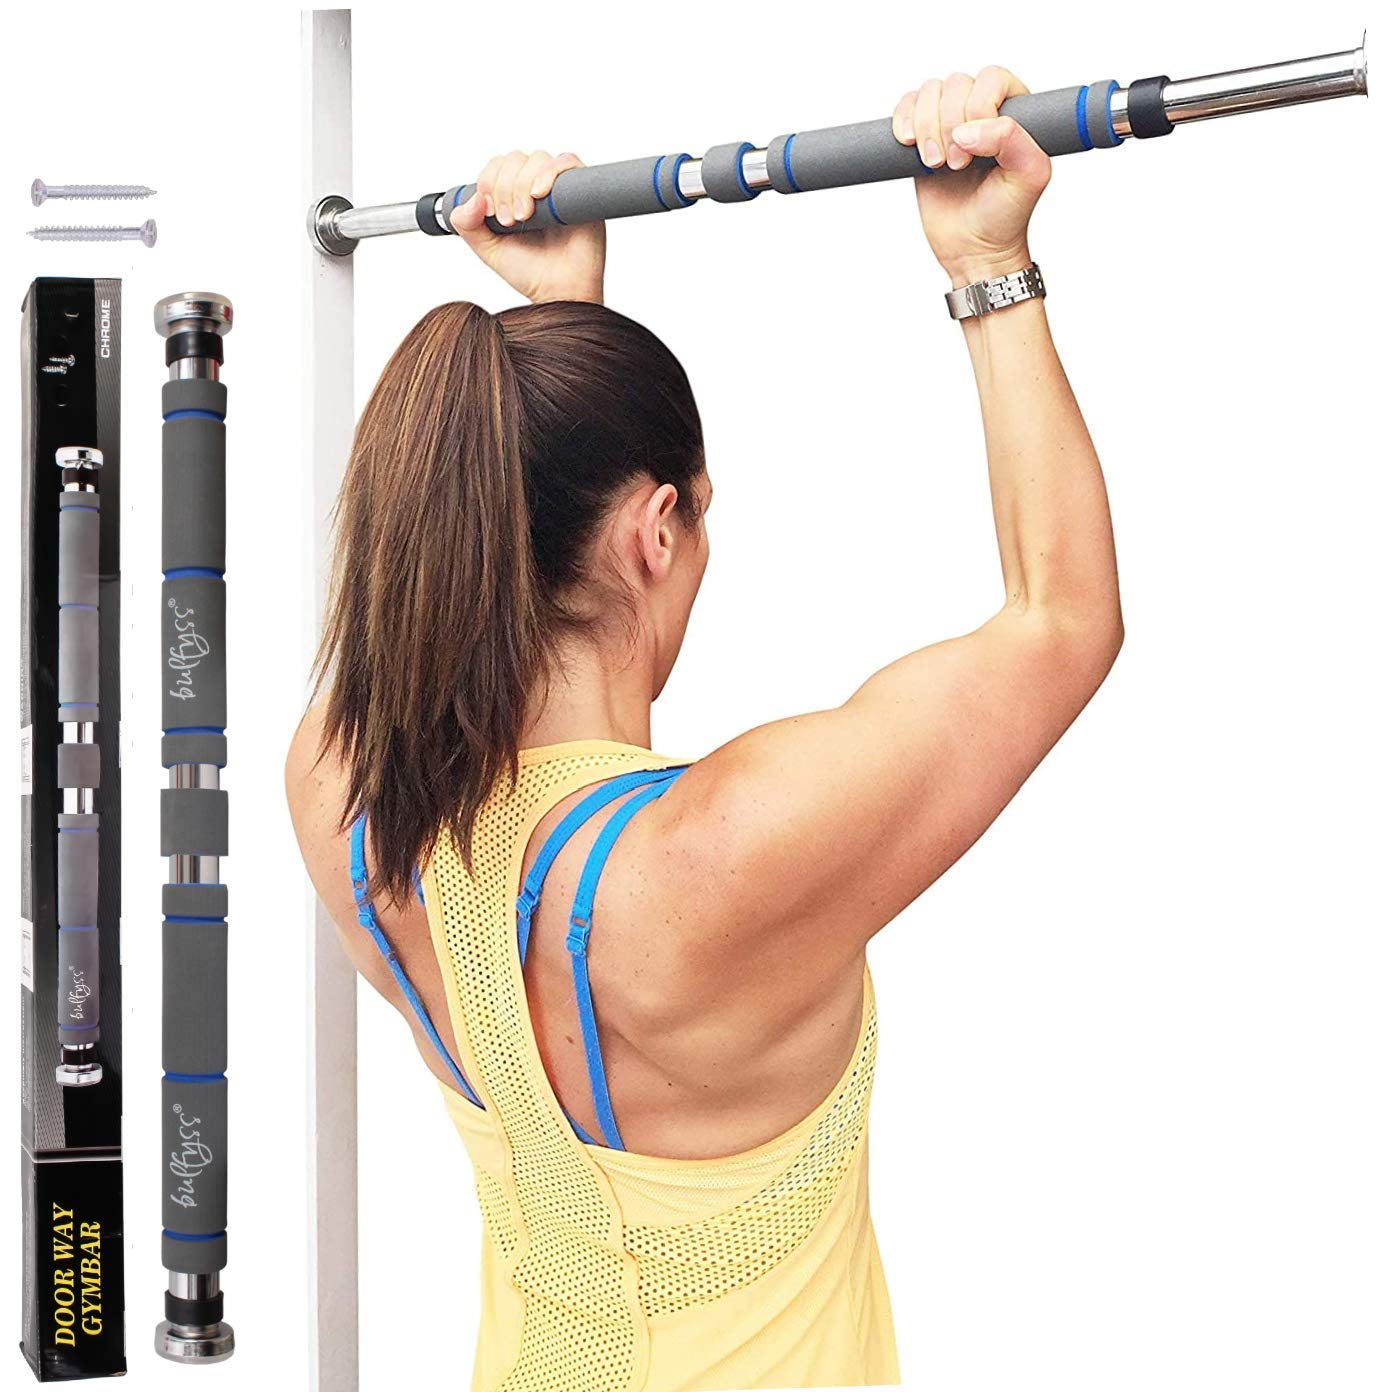 Bulfyss Pull up Bar